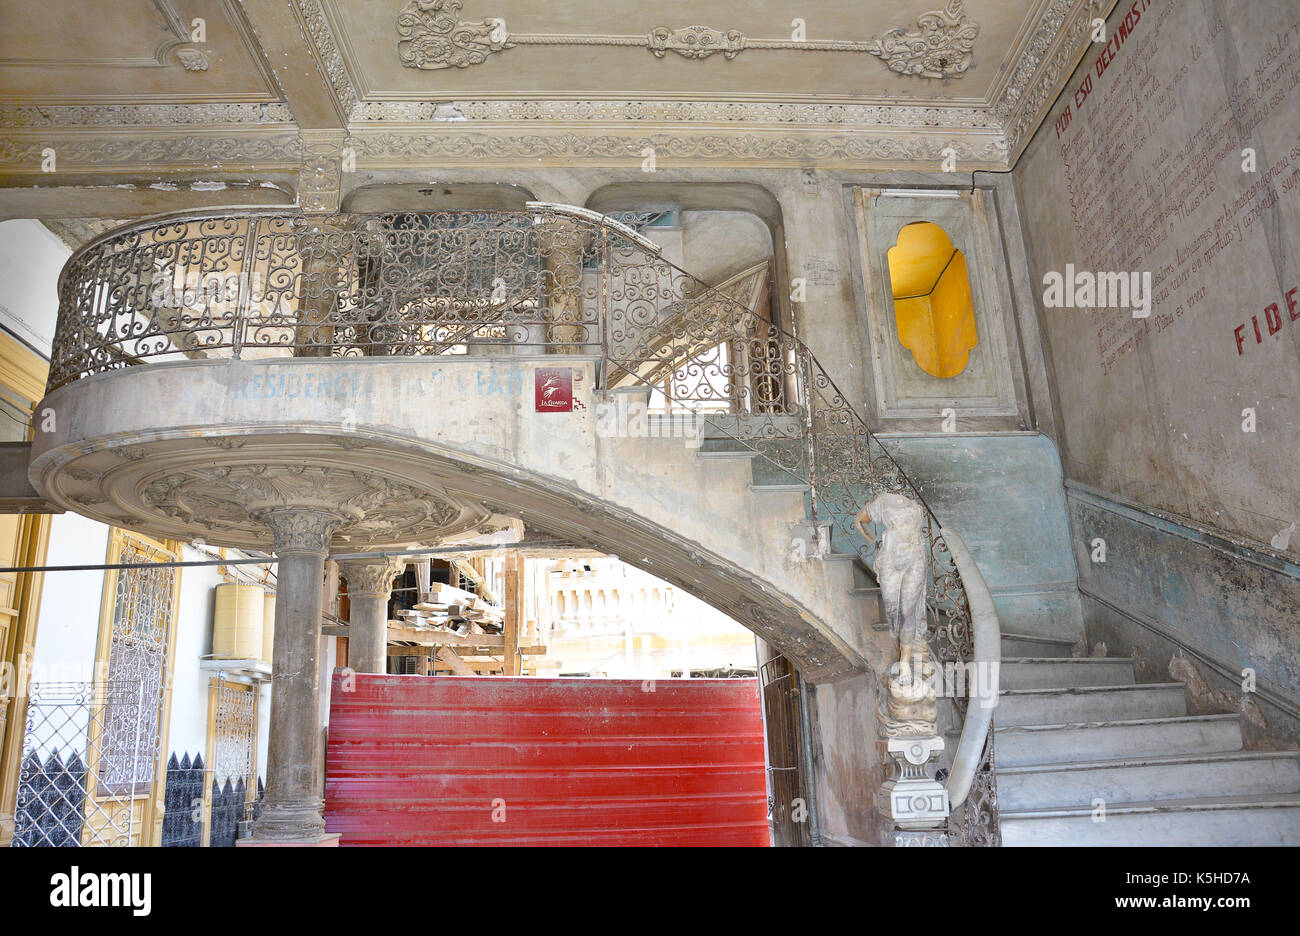 HAVANA, CUBA - JULY 23, 2016: Paladar La Guarida Restaurant staircase. The name La Guarida means means the Hideout. Teh restaurant is located on the t - Stock Image